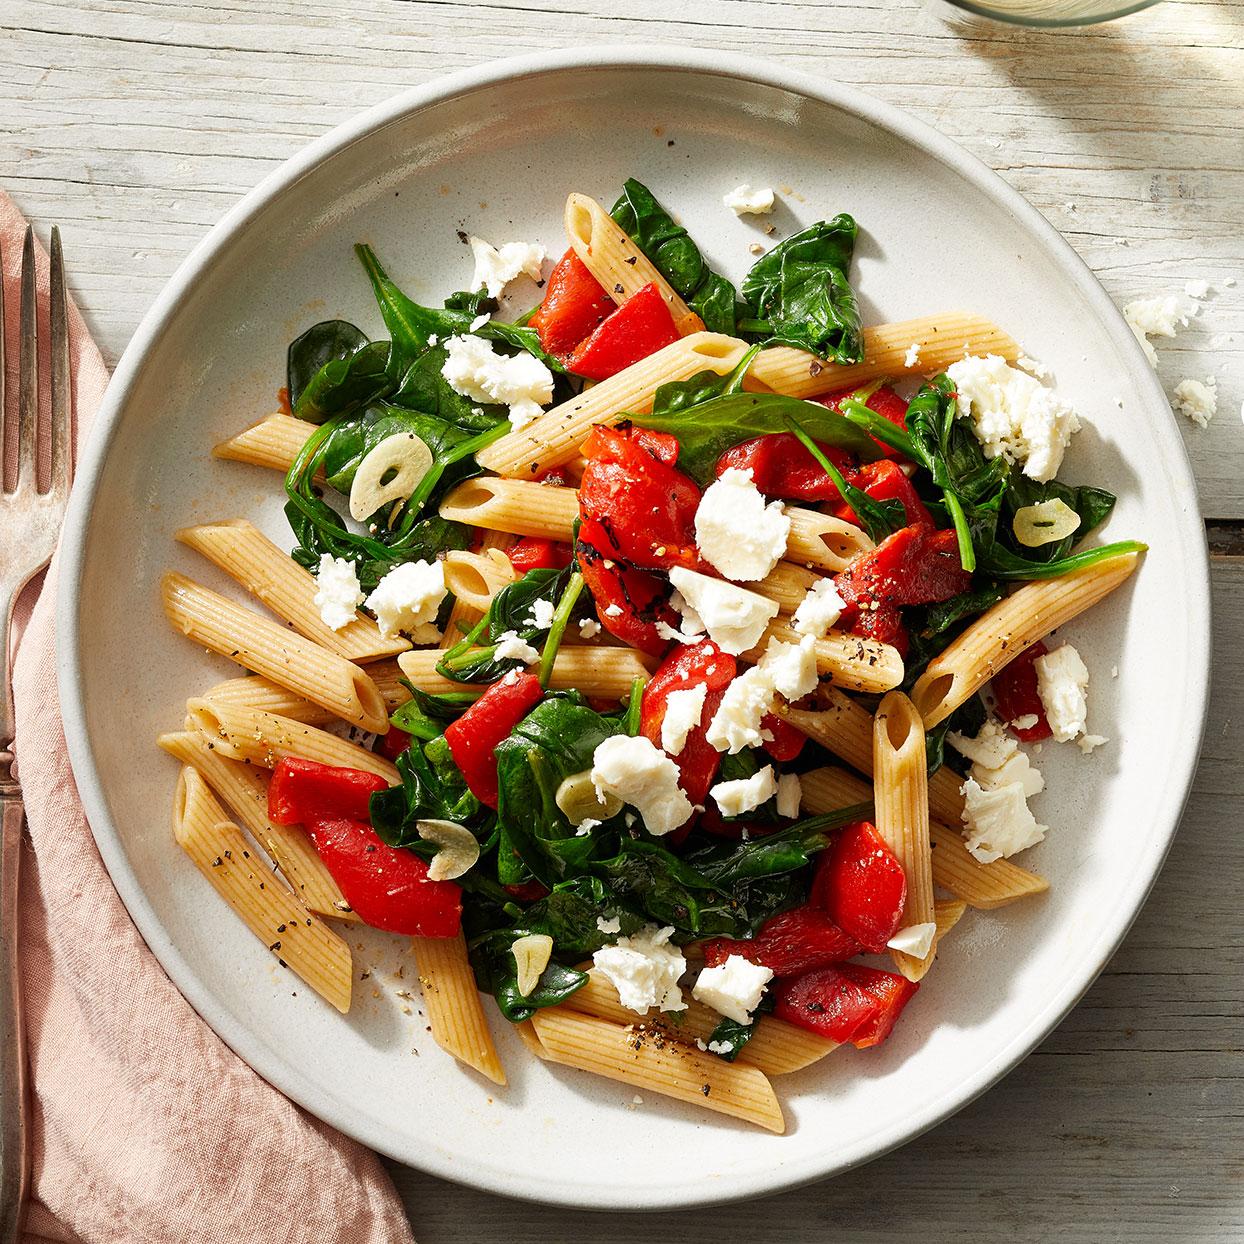 "In this quick 20-minute dinner recipe, tender penne pasta is combined with garlic, roasted red peppers and spinach and topped with crumbled feta cheese for a fast and easy Mediterranean-inspired meal. This recipe was graciously shared by EatingWell reader Dottie Carpenter, who states, ""Recipes are no good if they're not shared!"" Source: EatingWell.com, March 2020"